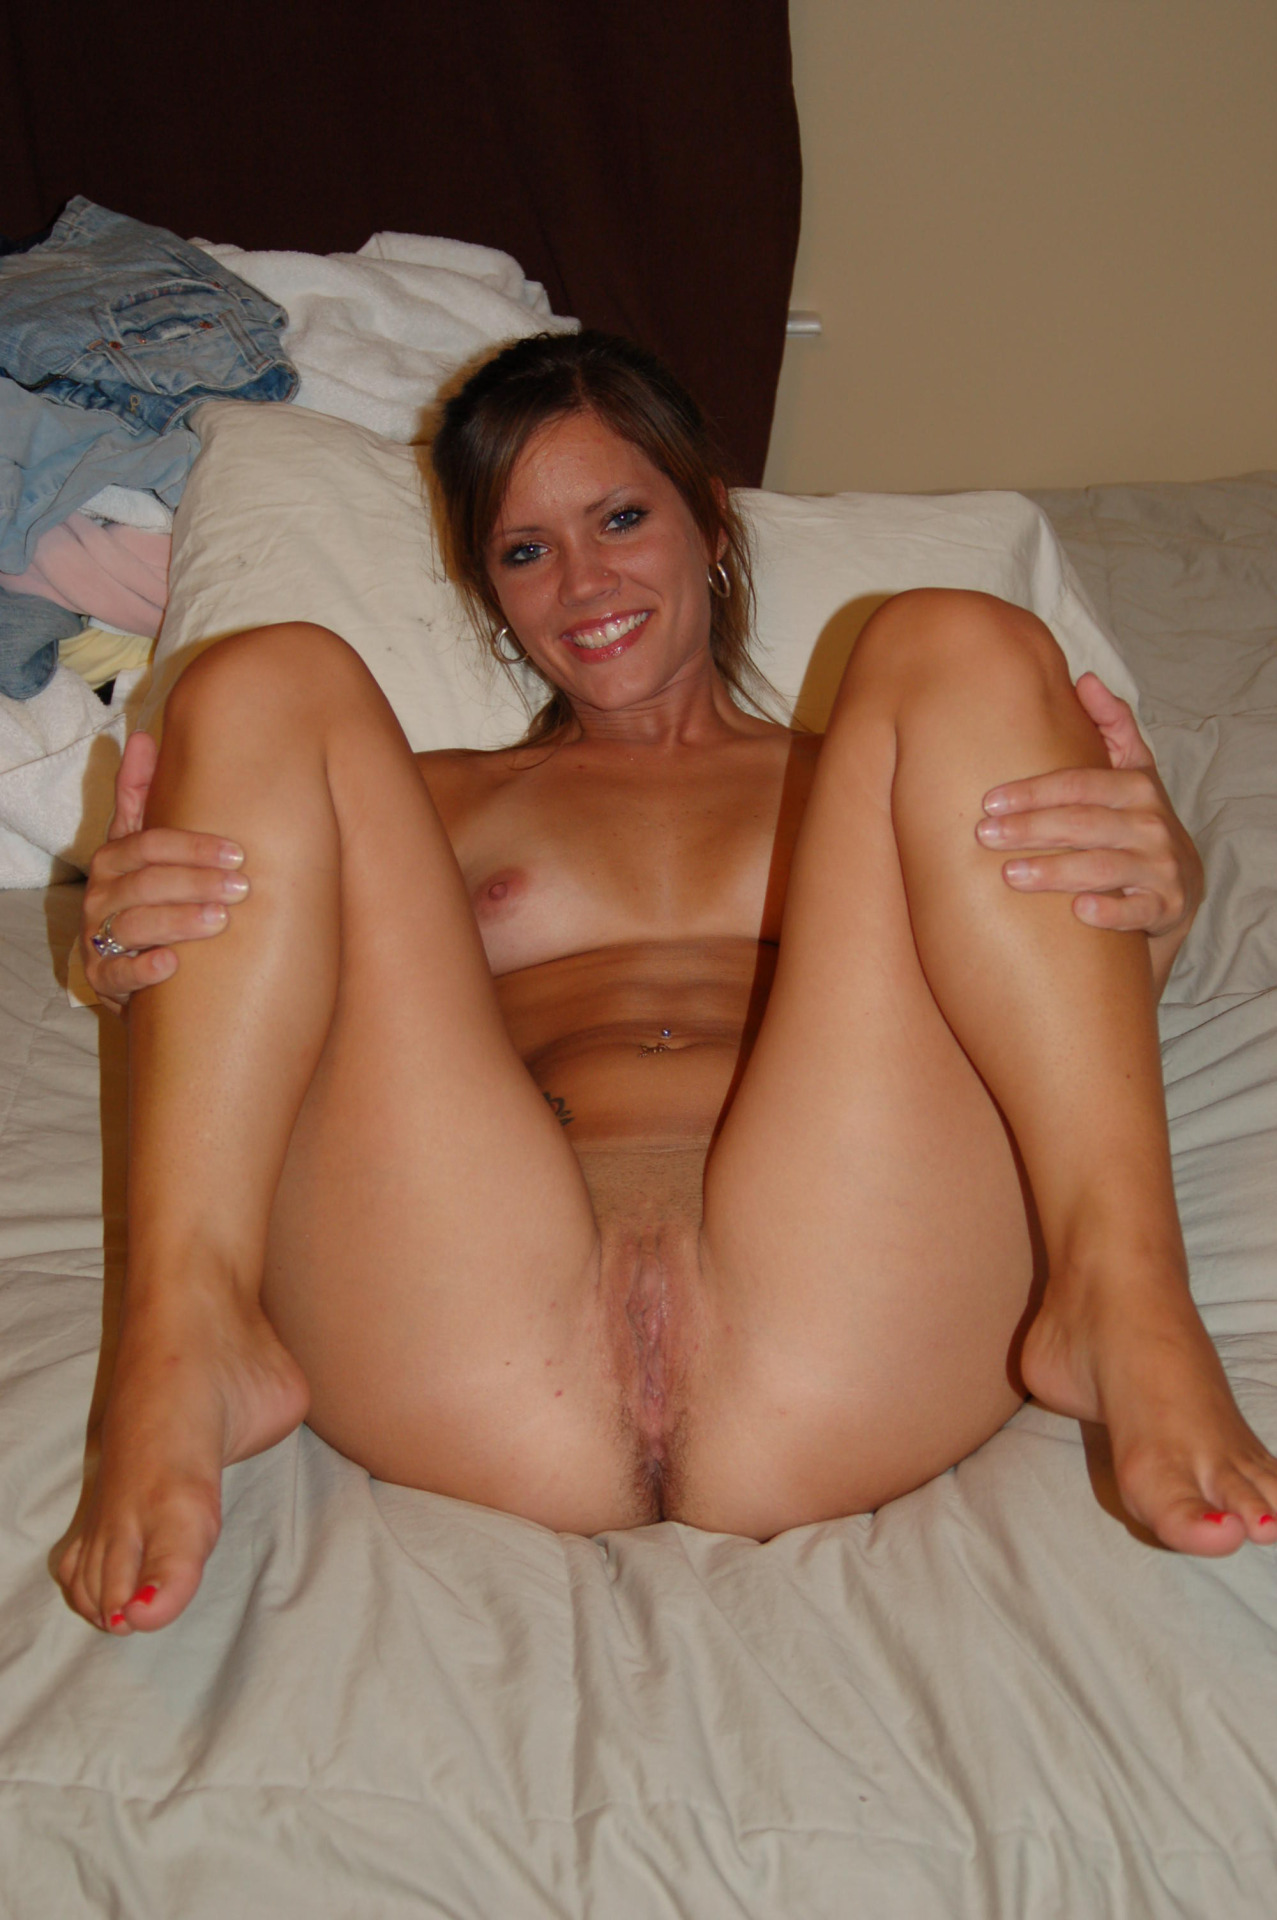 Pics of naked wives